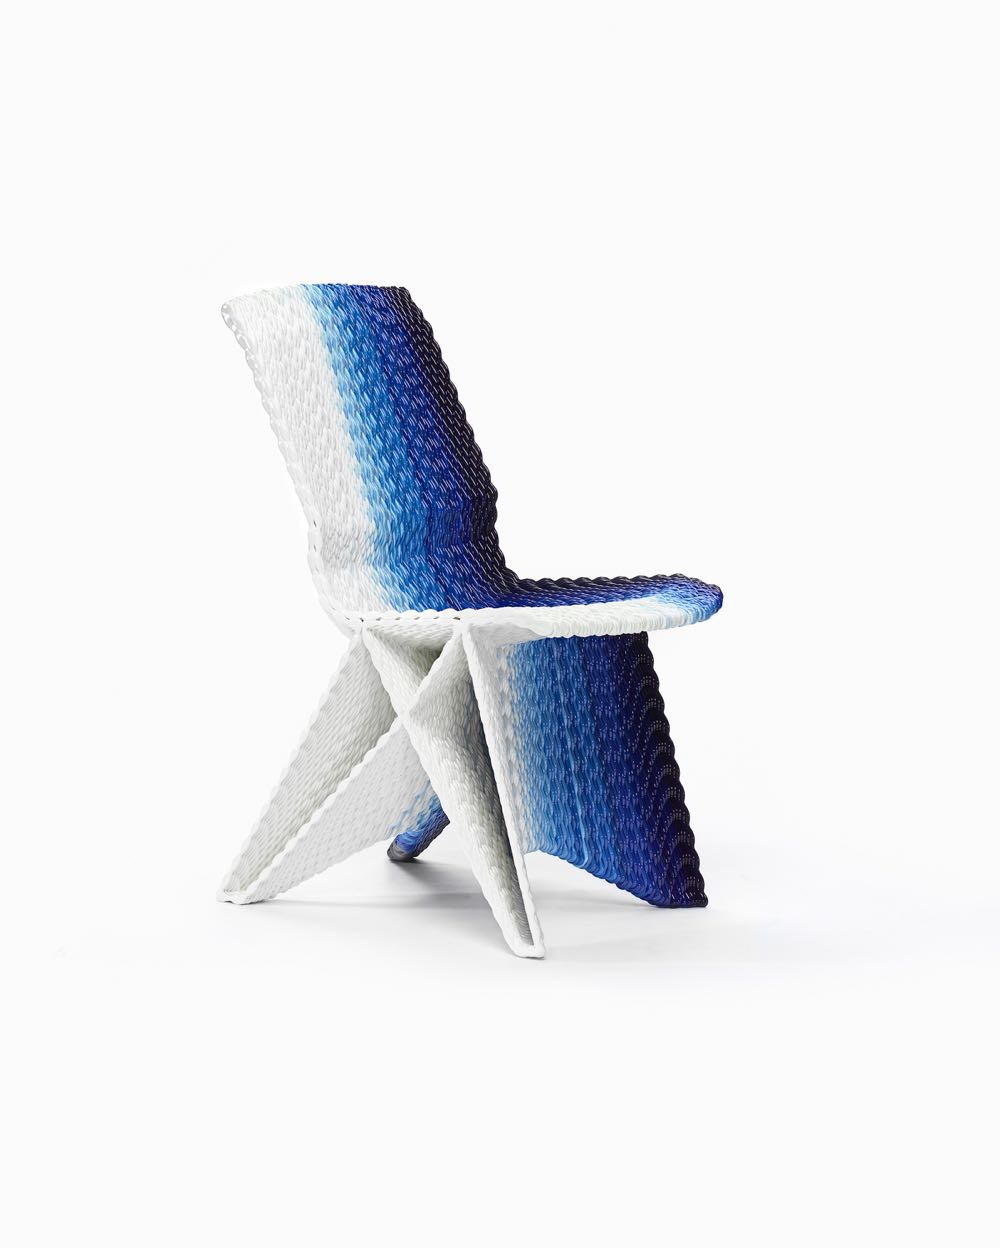 The 'Endless chair' by Dirk Vander Kooij designed in 2010. The chair is manufactured in extruded polycarbonate by Dirk Vander Kooij using a robotic arm. 79.0 x 40.0 x 62.0 cm